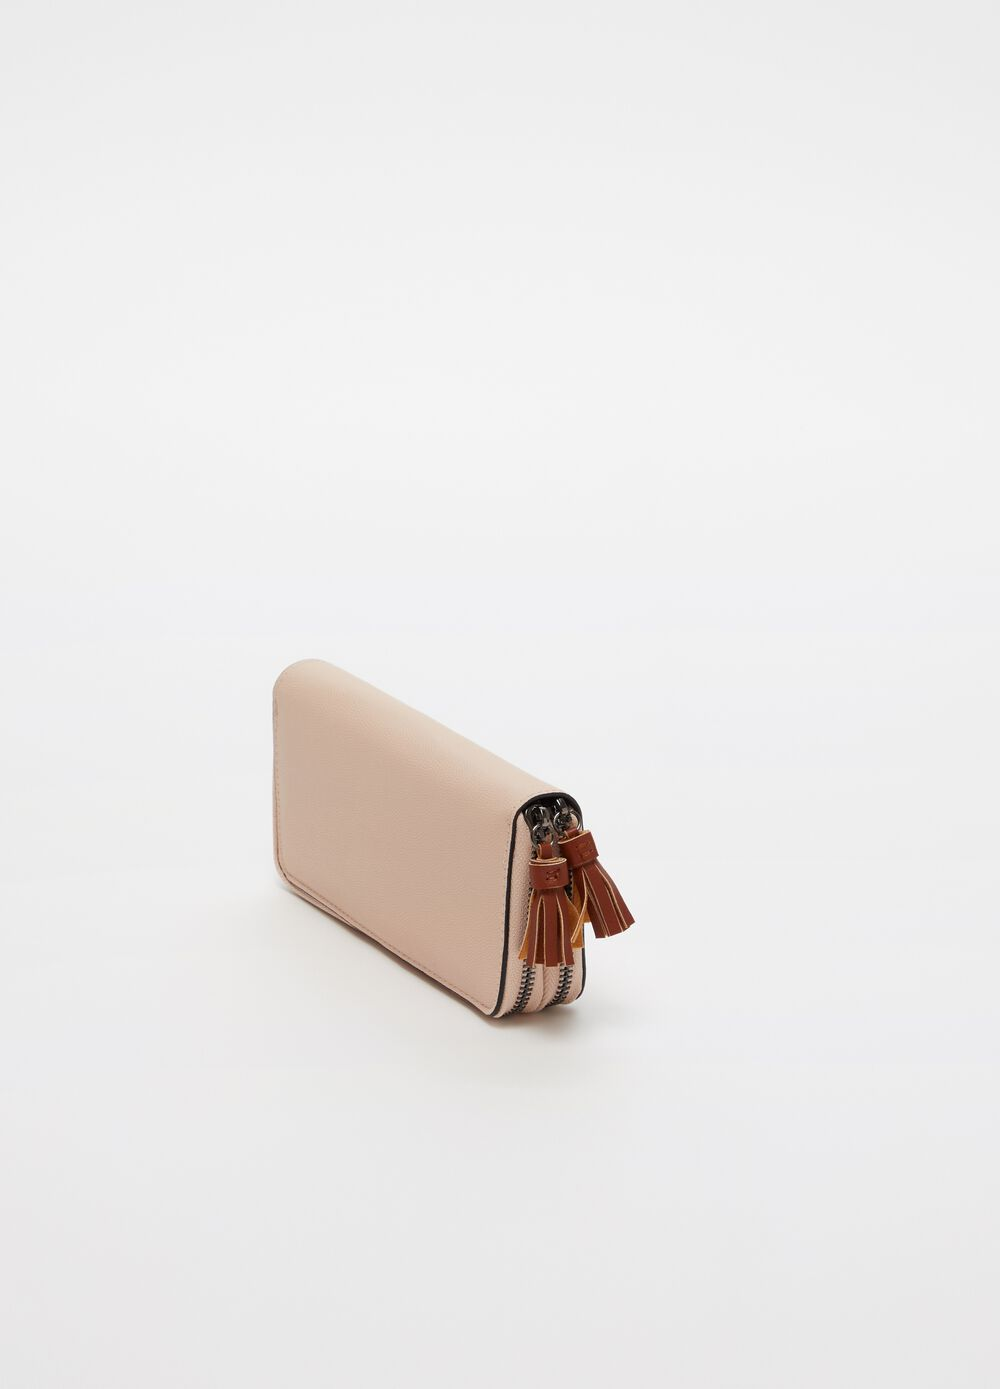 Rectangular wallet with double compartment